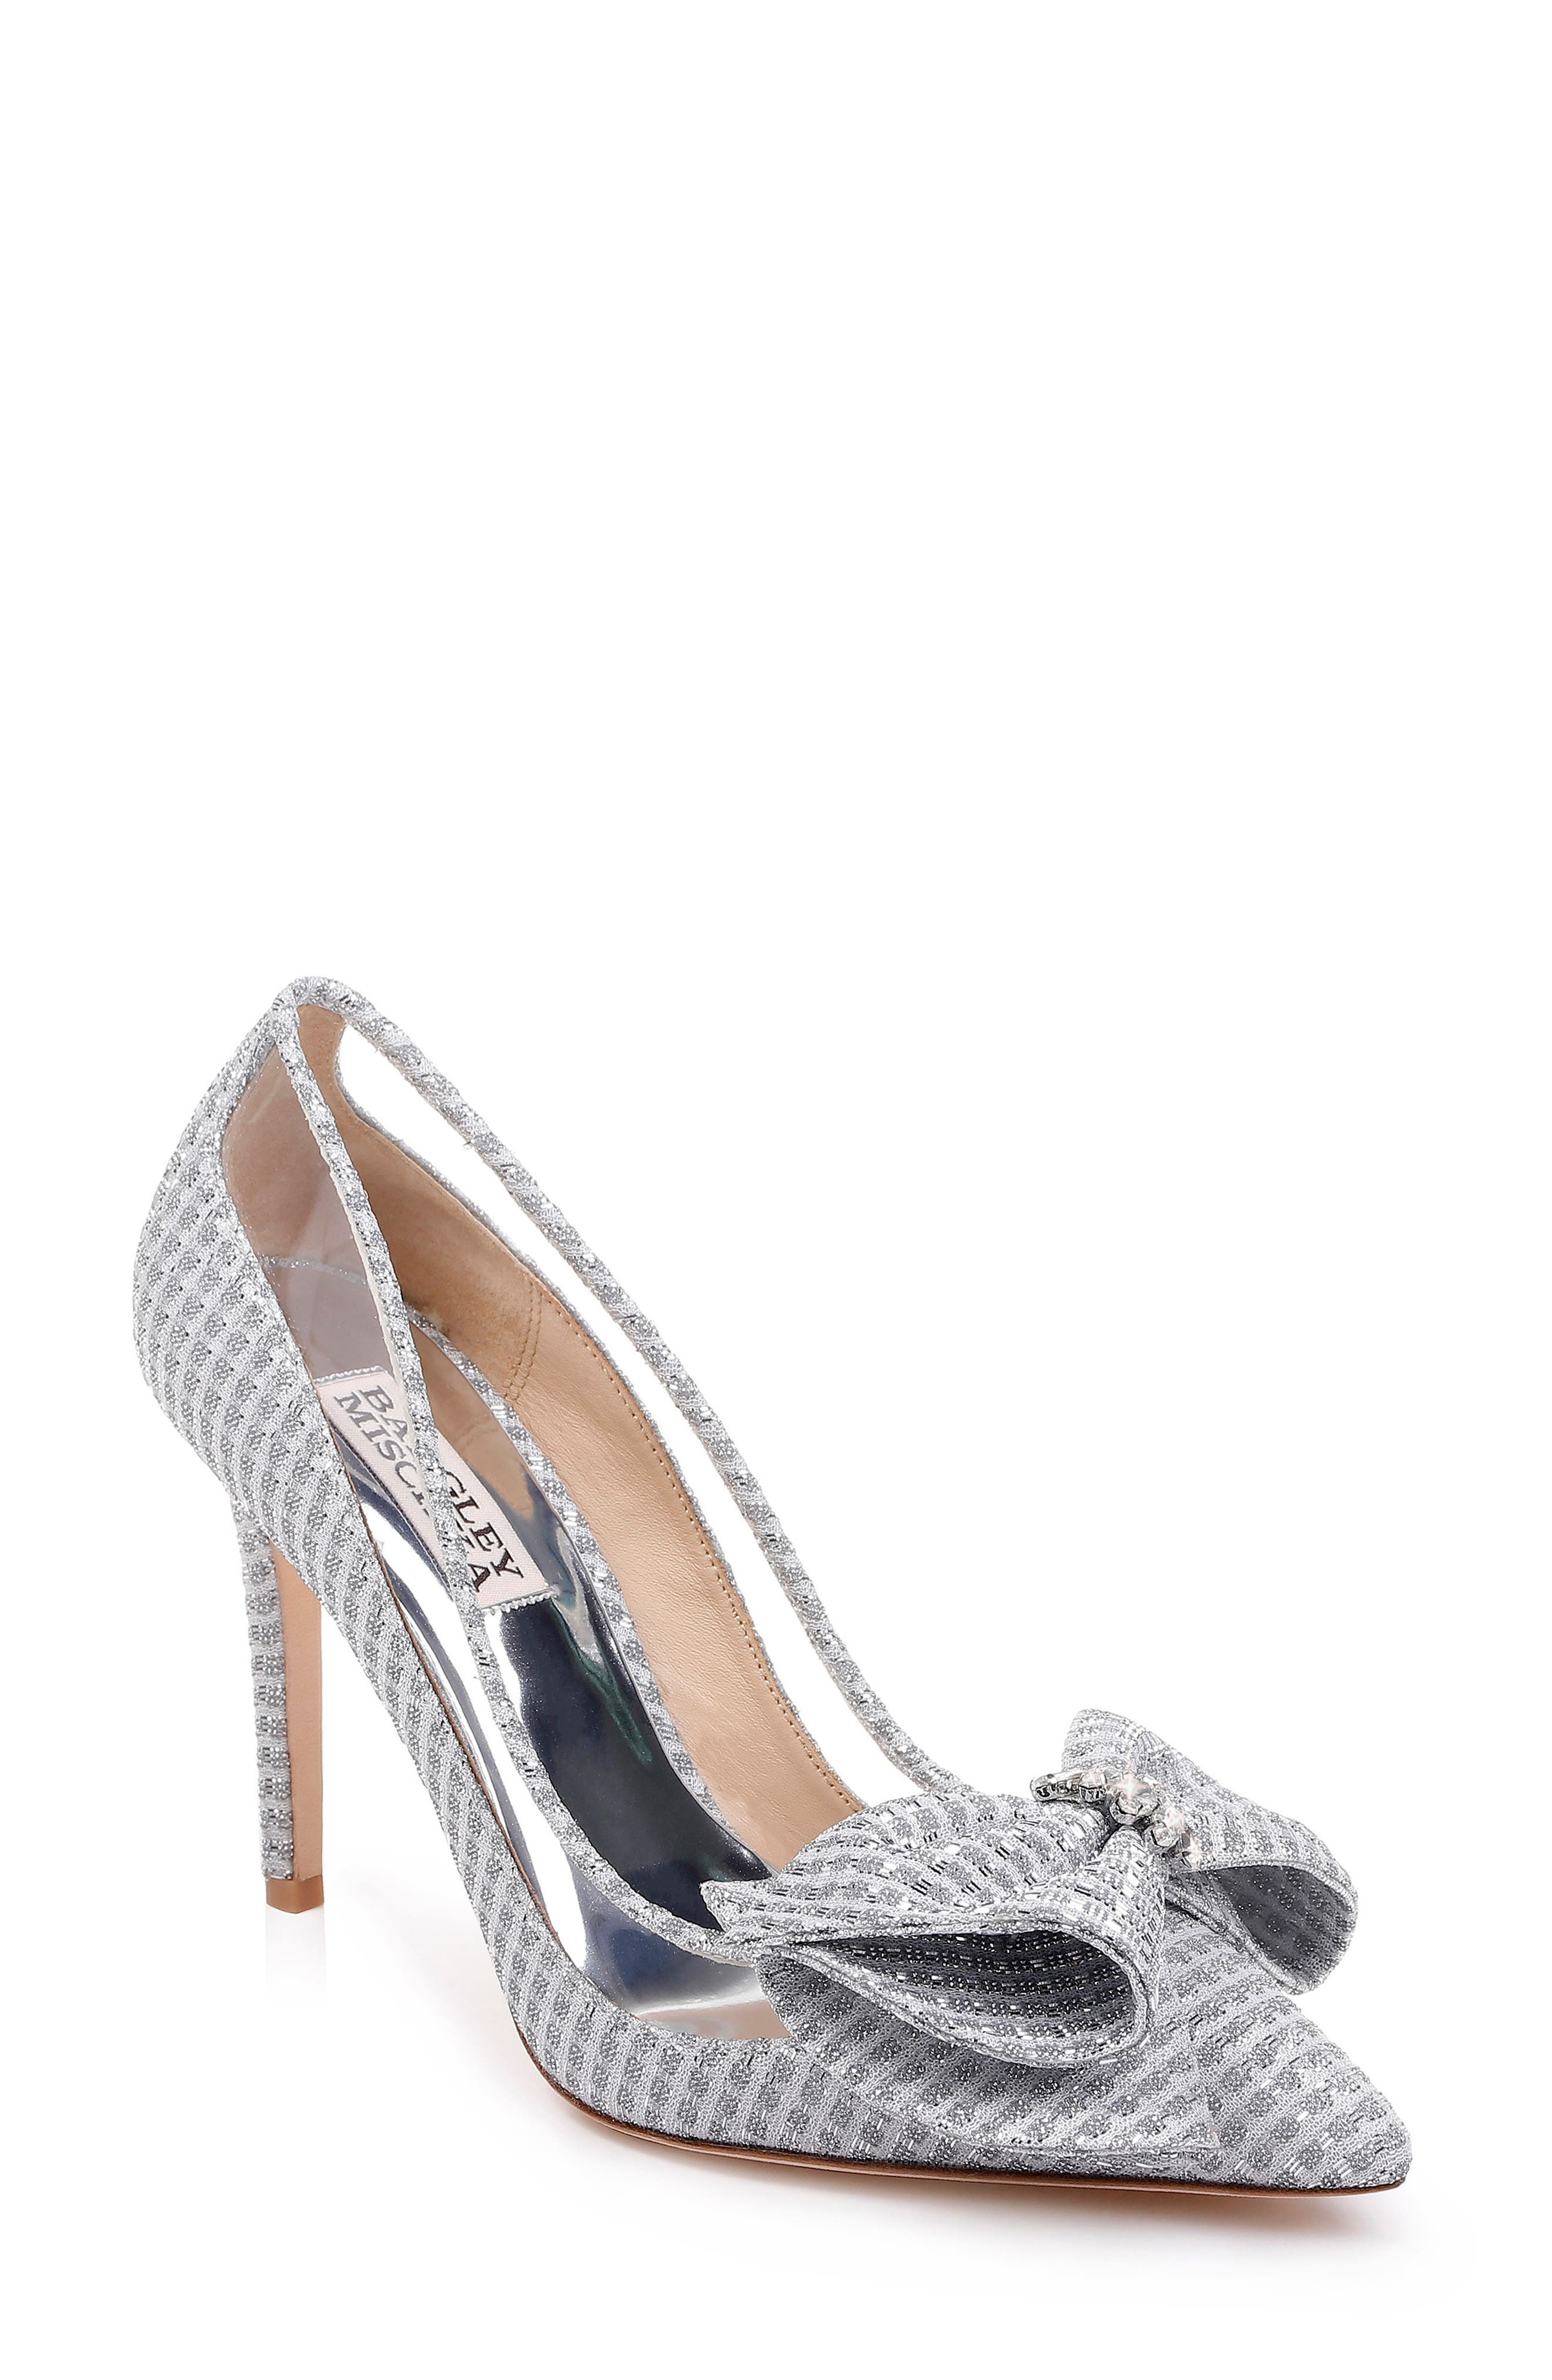 BADGLEY MISCHKA COLLECTION, Badgley Mischka Frances Bow Pump, Main thumbnail 1, color, SILVER GLITTER FABRIC